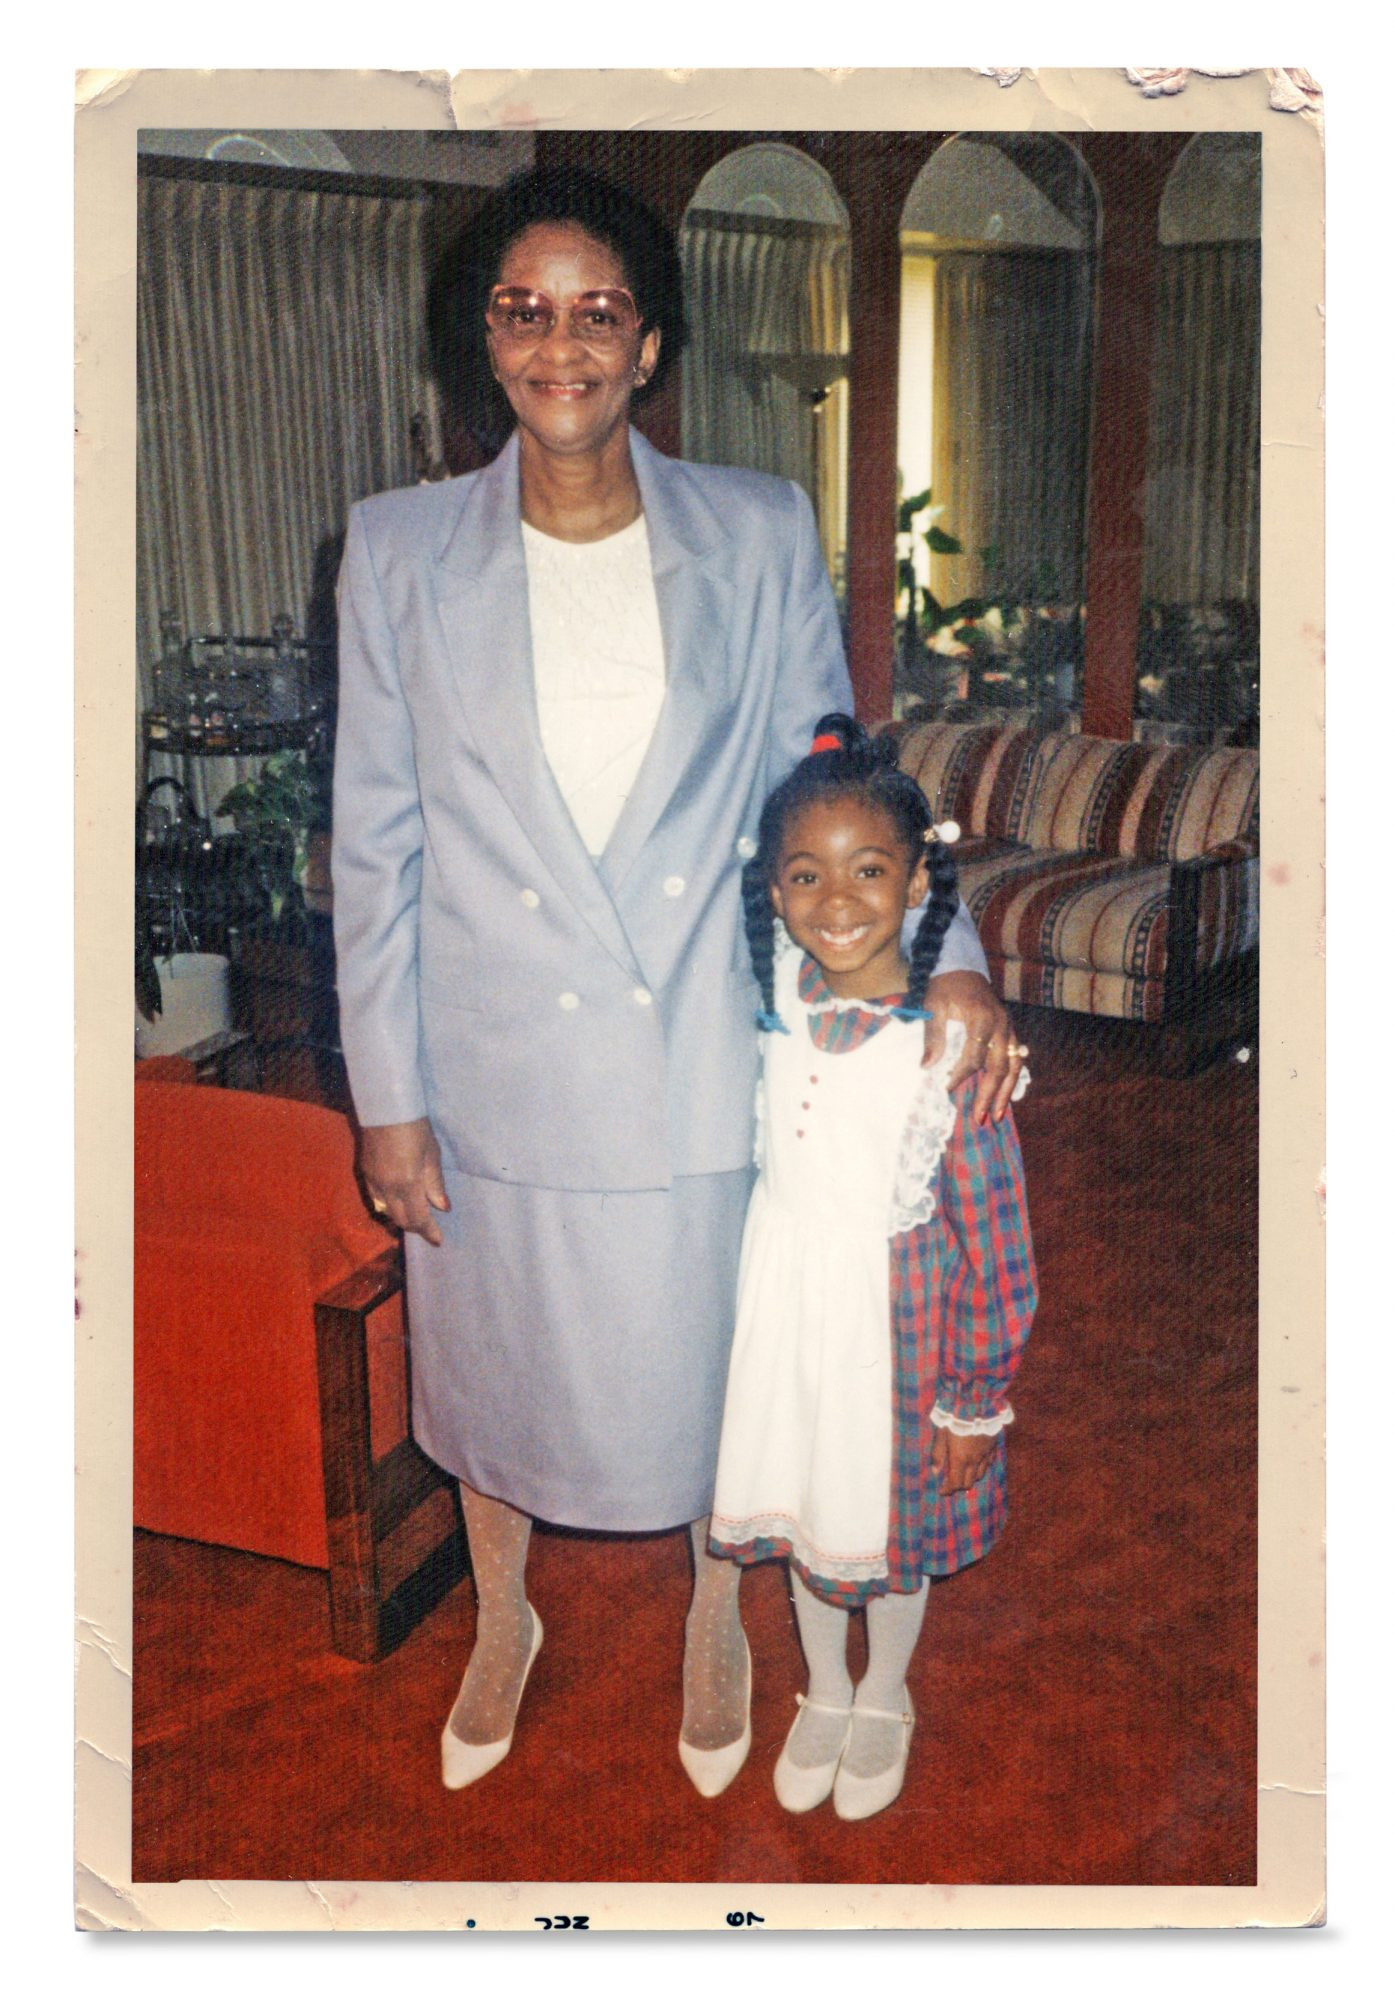 Jocelyn Delk Adams and her grandmother in about 1986